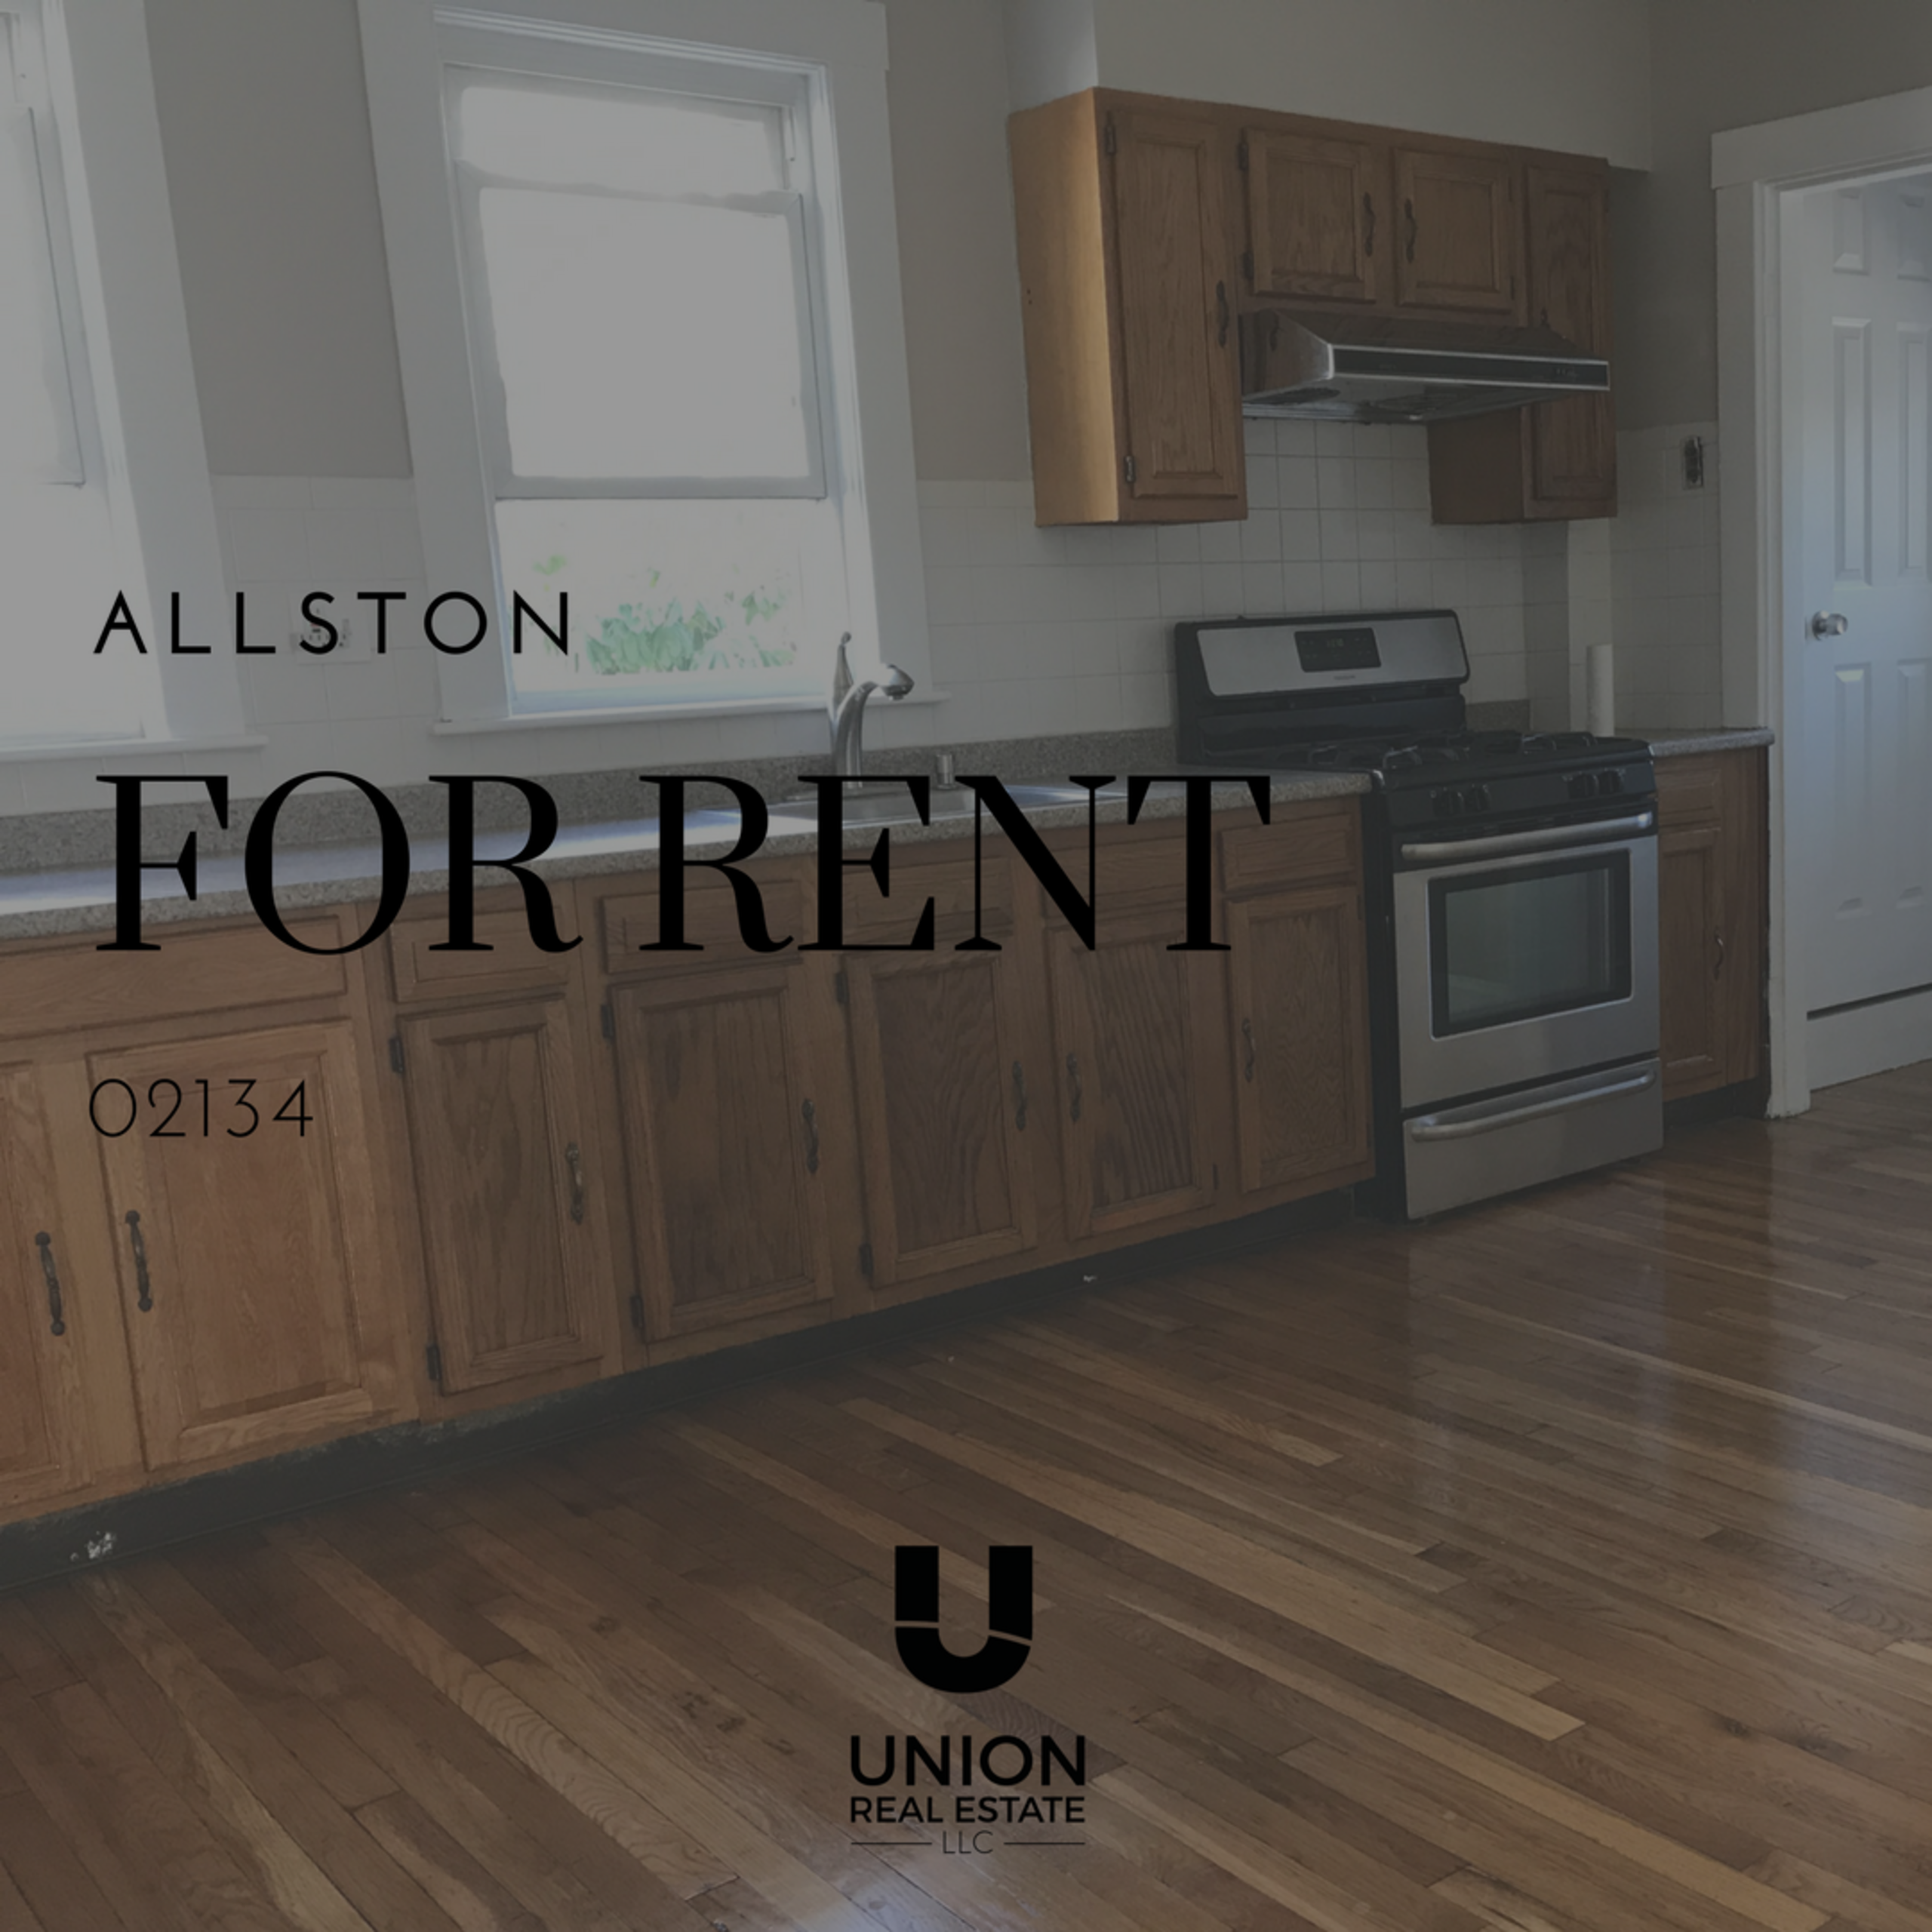 FOR RENT! Spacious 3 bedrooms in vibrant Allston area